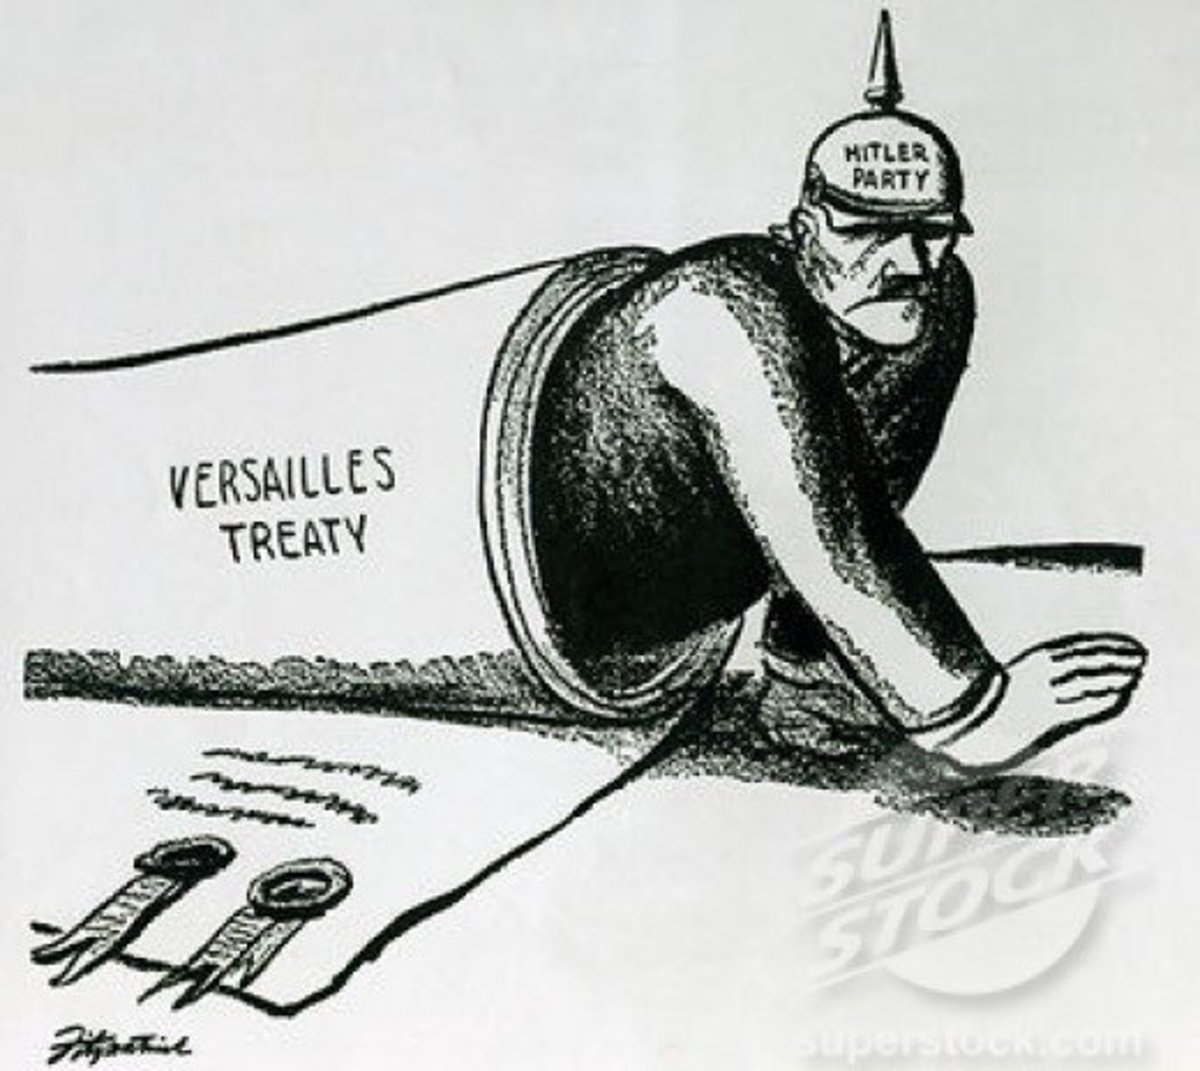 The Myth that the Treaty of Versailles led to the Rise of the Nazis